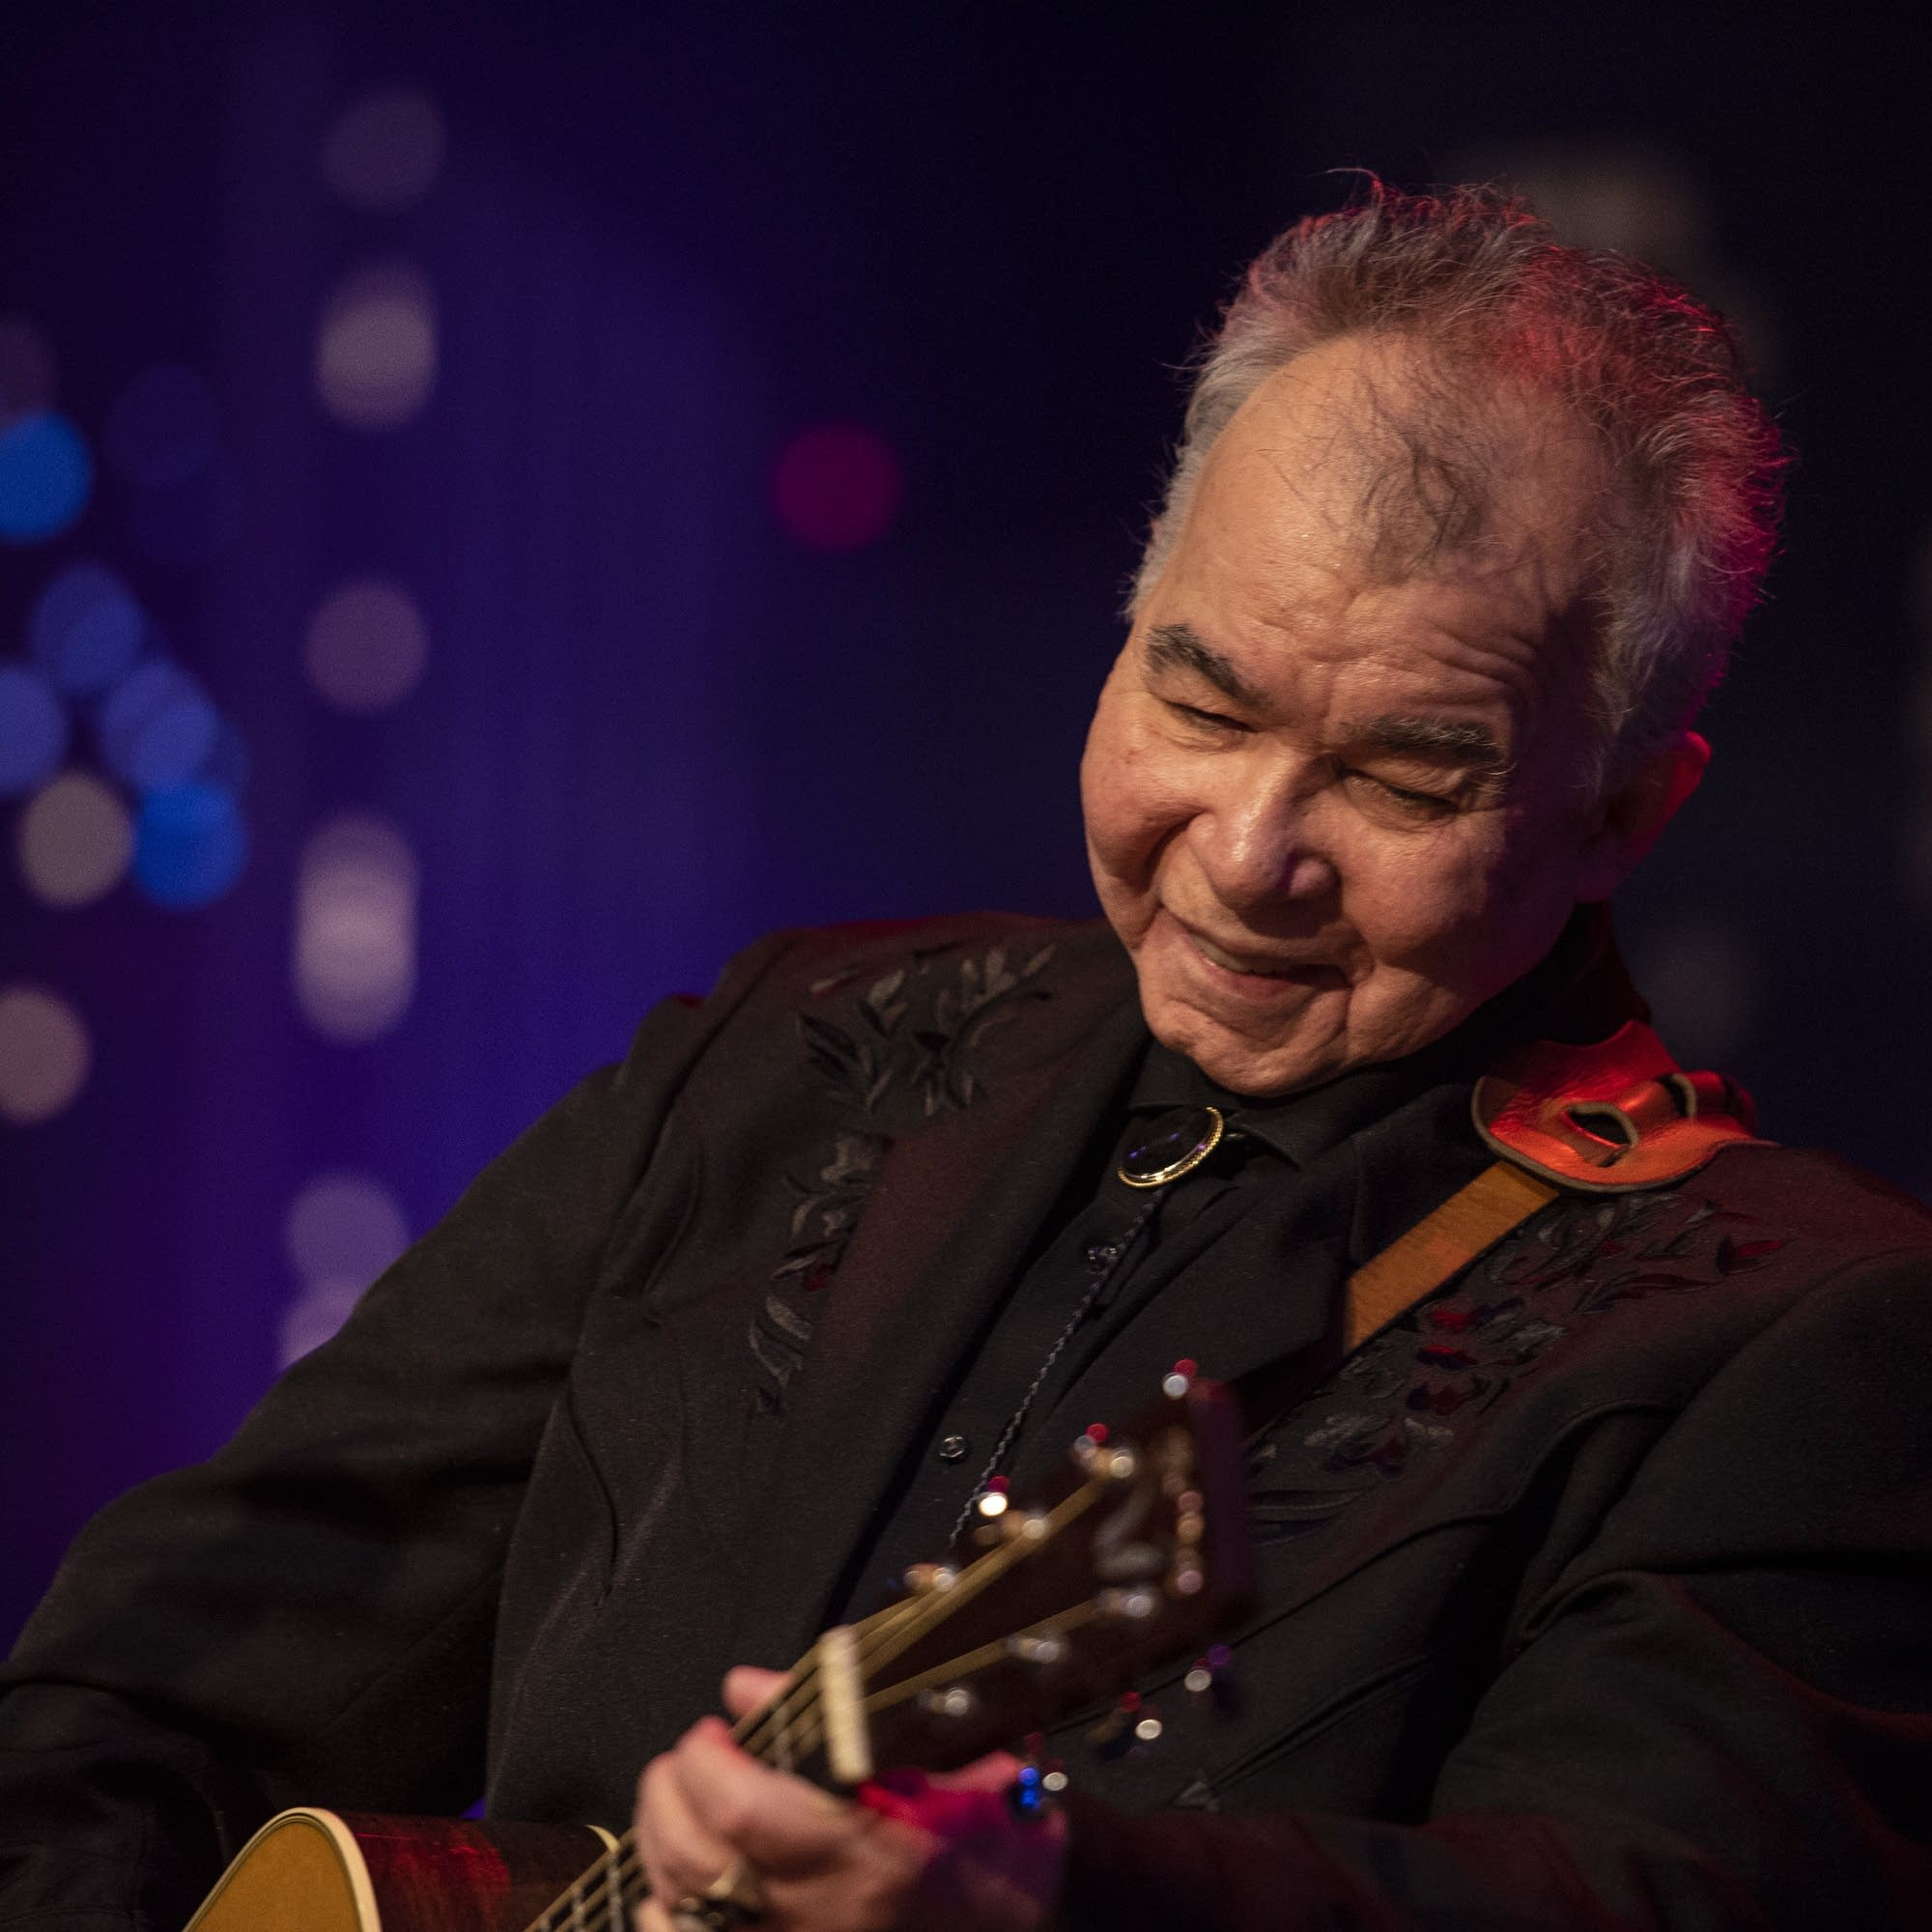 Singer Songwriter John Prine Has Died At Age 73 The Current